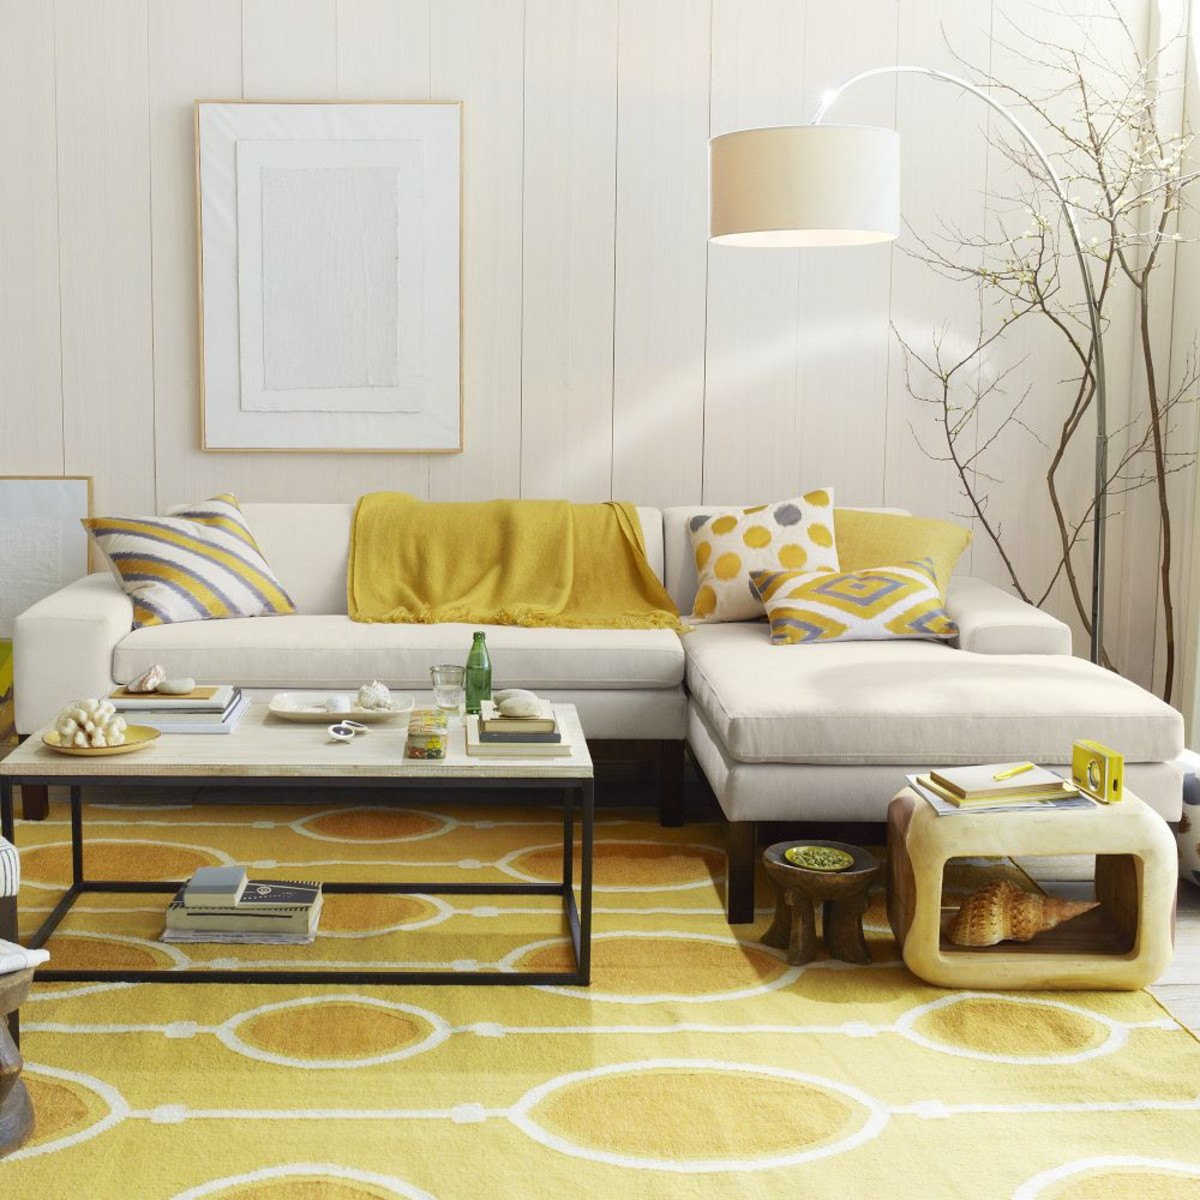 The Best Summer Paint Colors for Your Living Room2 summer paint colors for your living room The Best Summer Paint Colors for Your Living Room The Best Summer Paint Colors for Your Living Room2 1